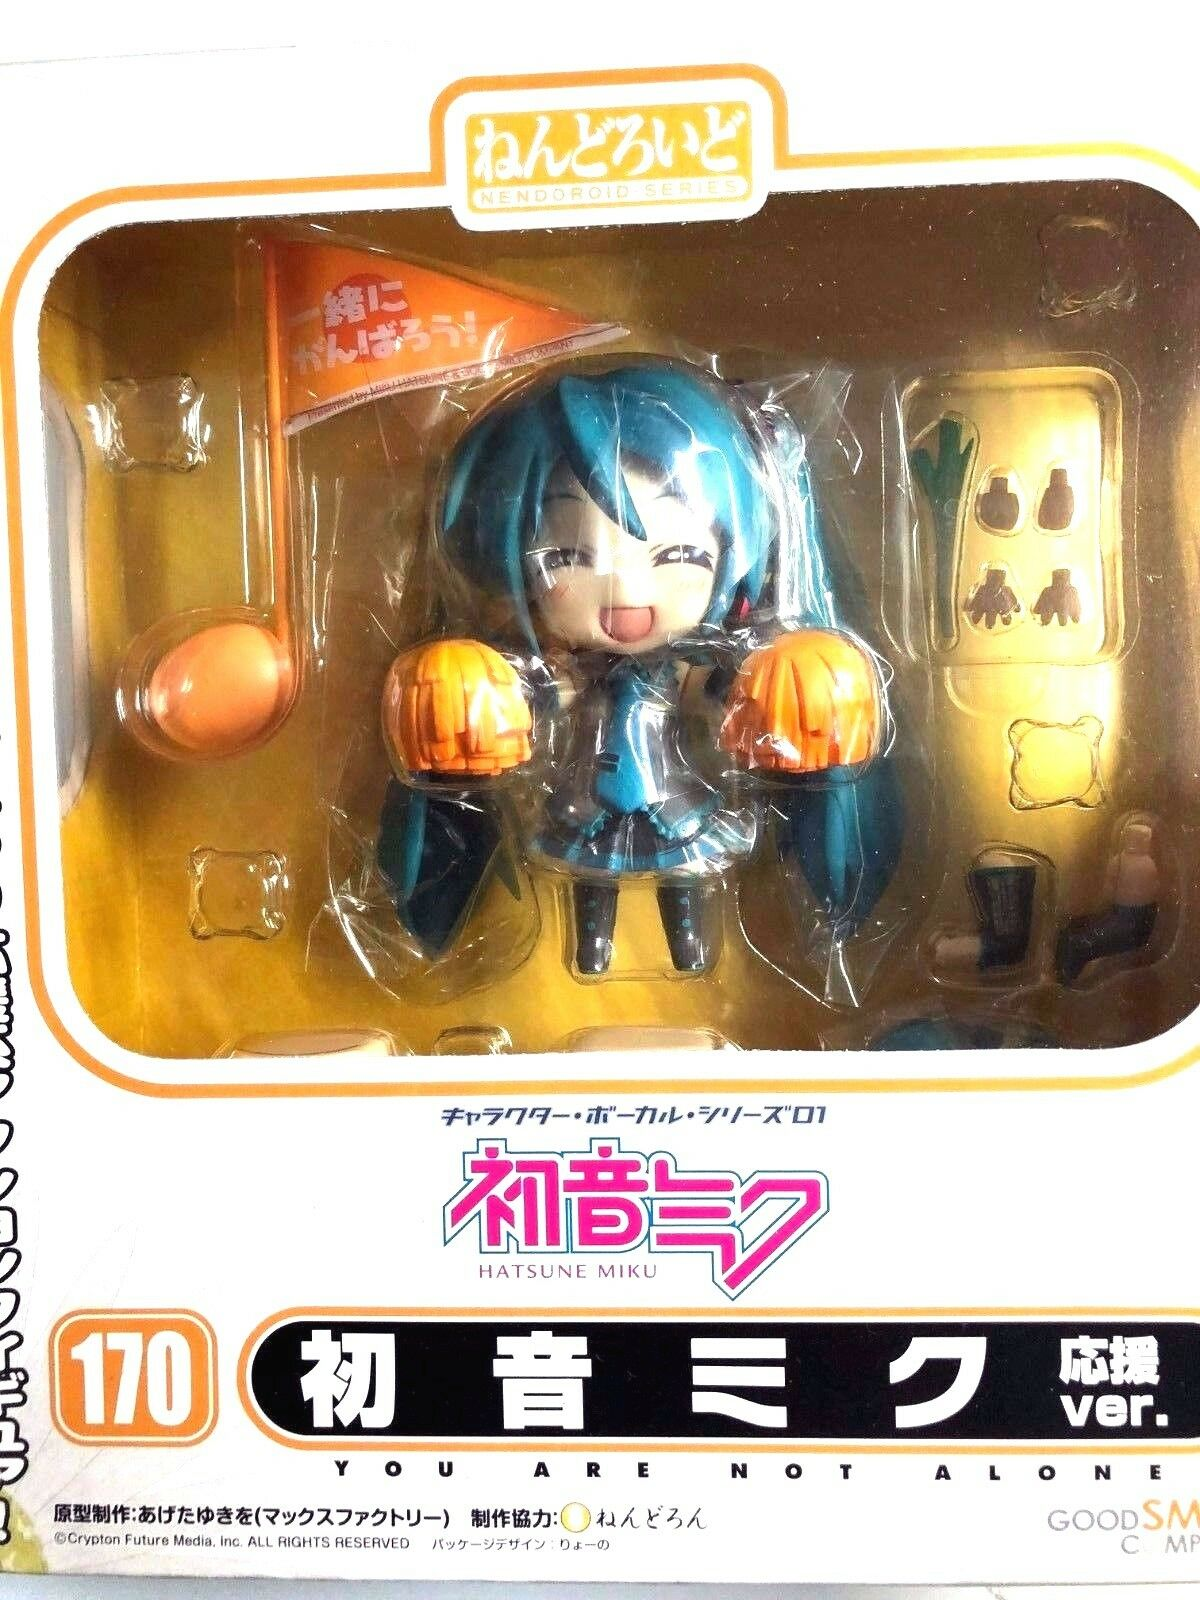 Free Shipping Japan Authentic NendGoldid Hatsune Miku Cheerful Ver.Japan limited